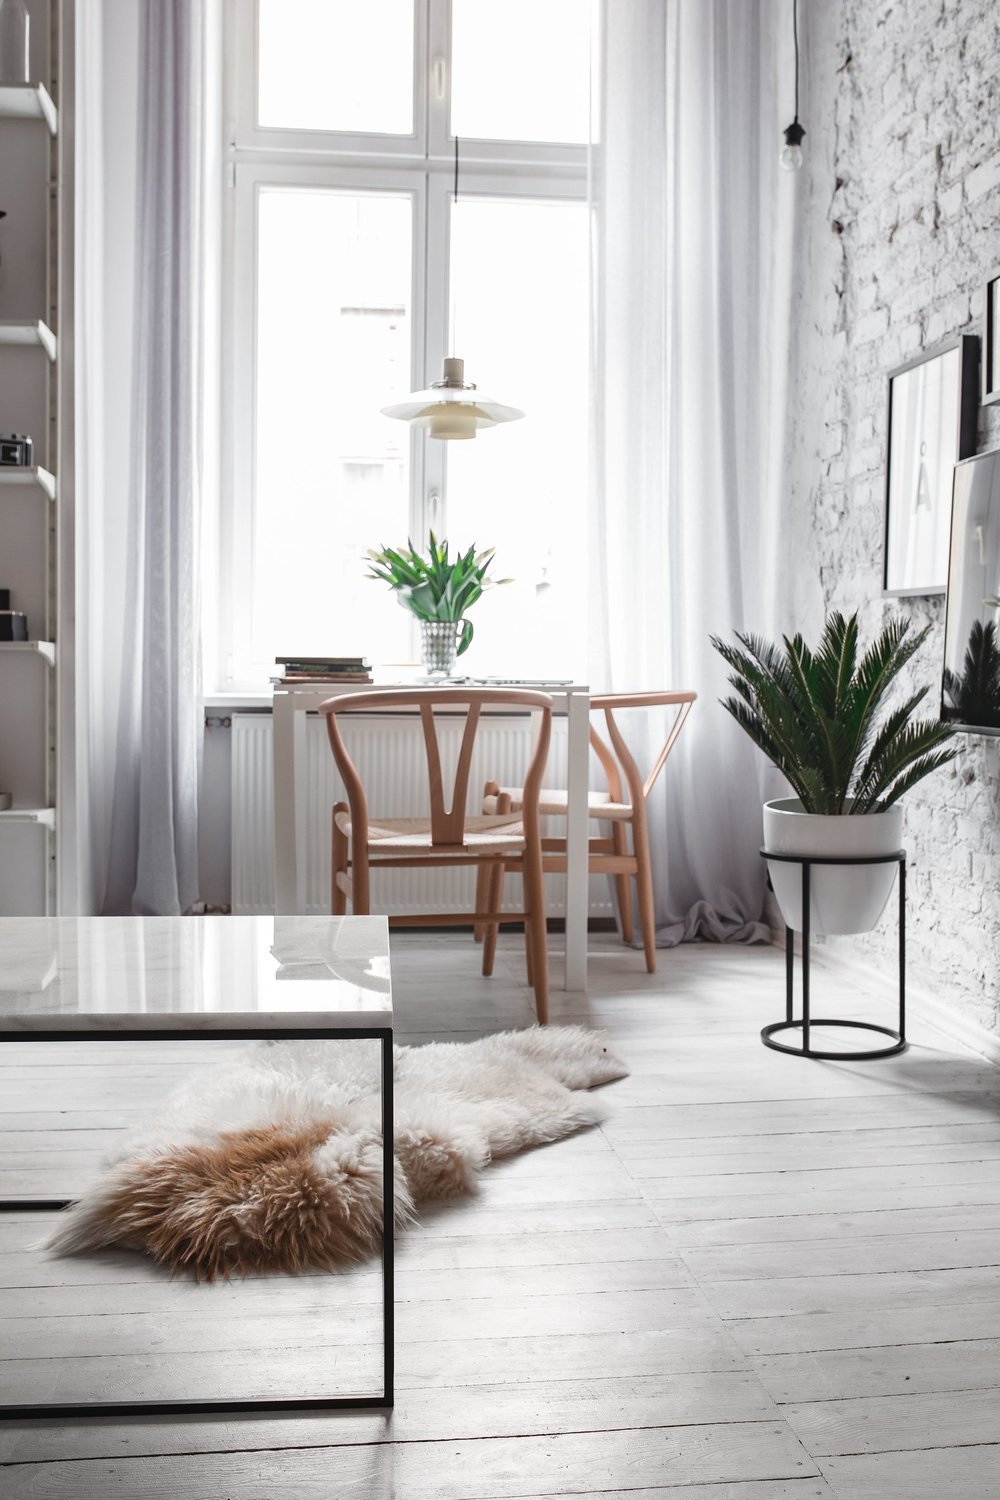 kaboompics_White+Living+Room+With+Minimalist+Scandinavian+Interior+Design,+Un'common+Marble+Table.jpg